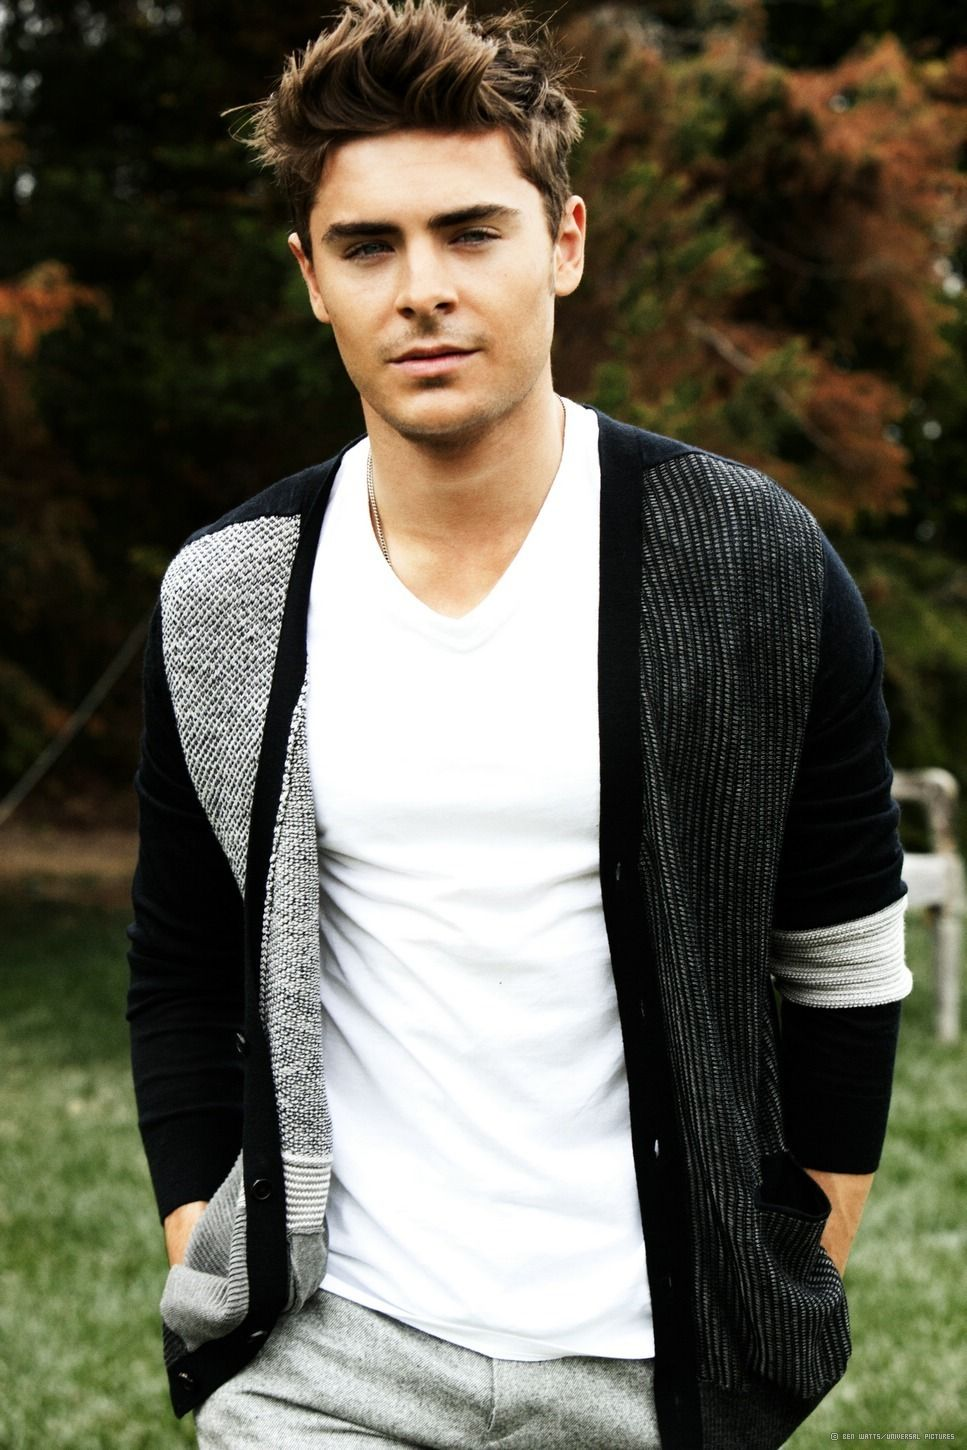 Zac Efron oh heck yes.